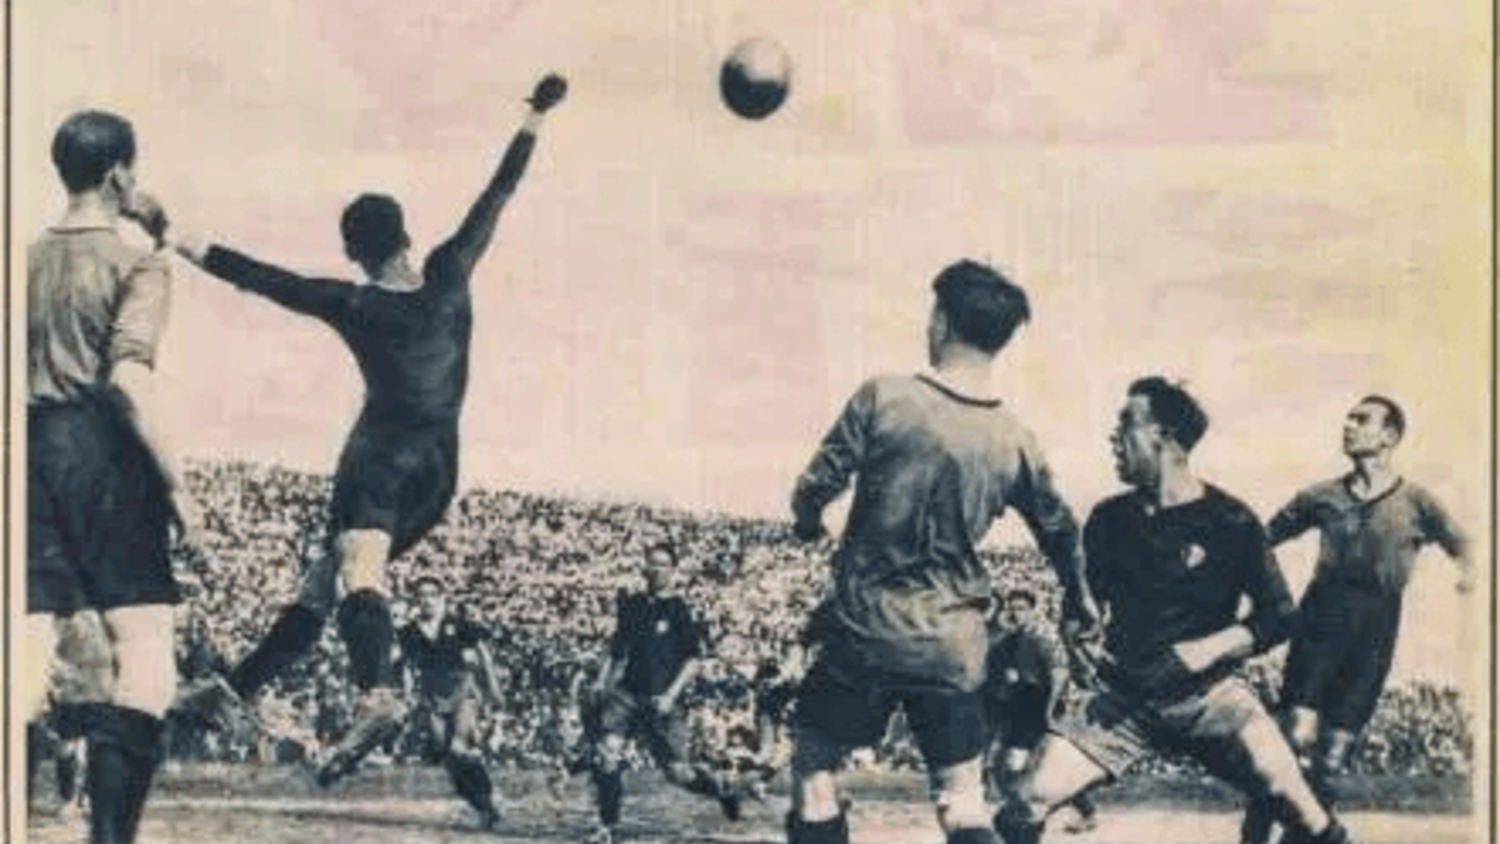 THE GAME THAT CHANGED ITALIAN FOOTBALL